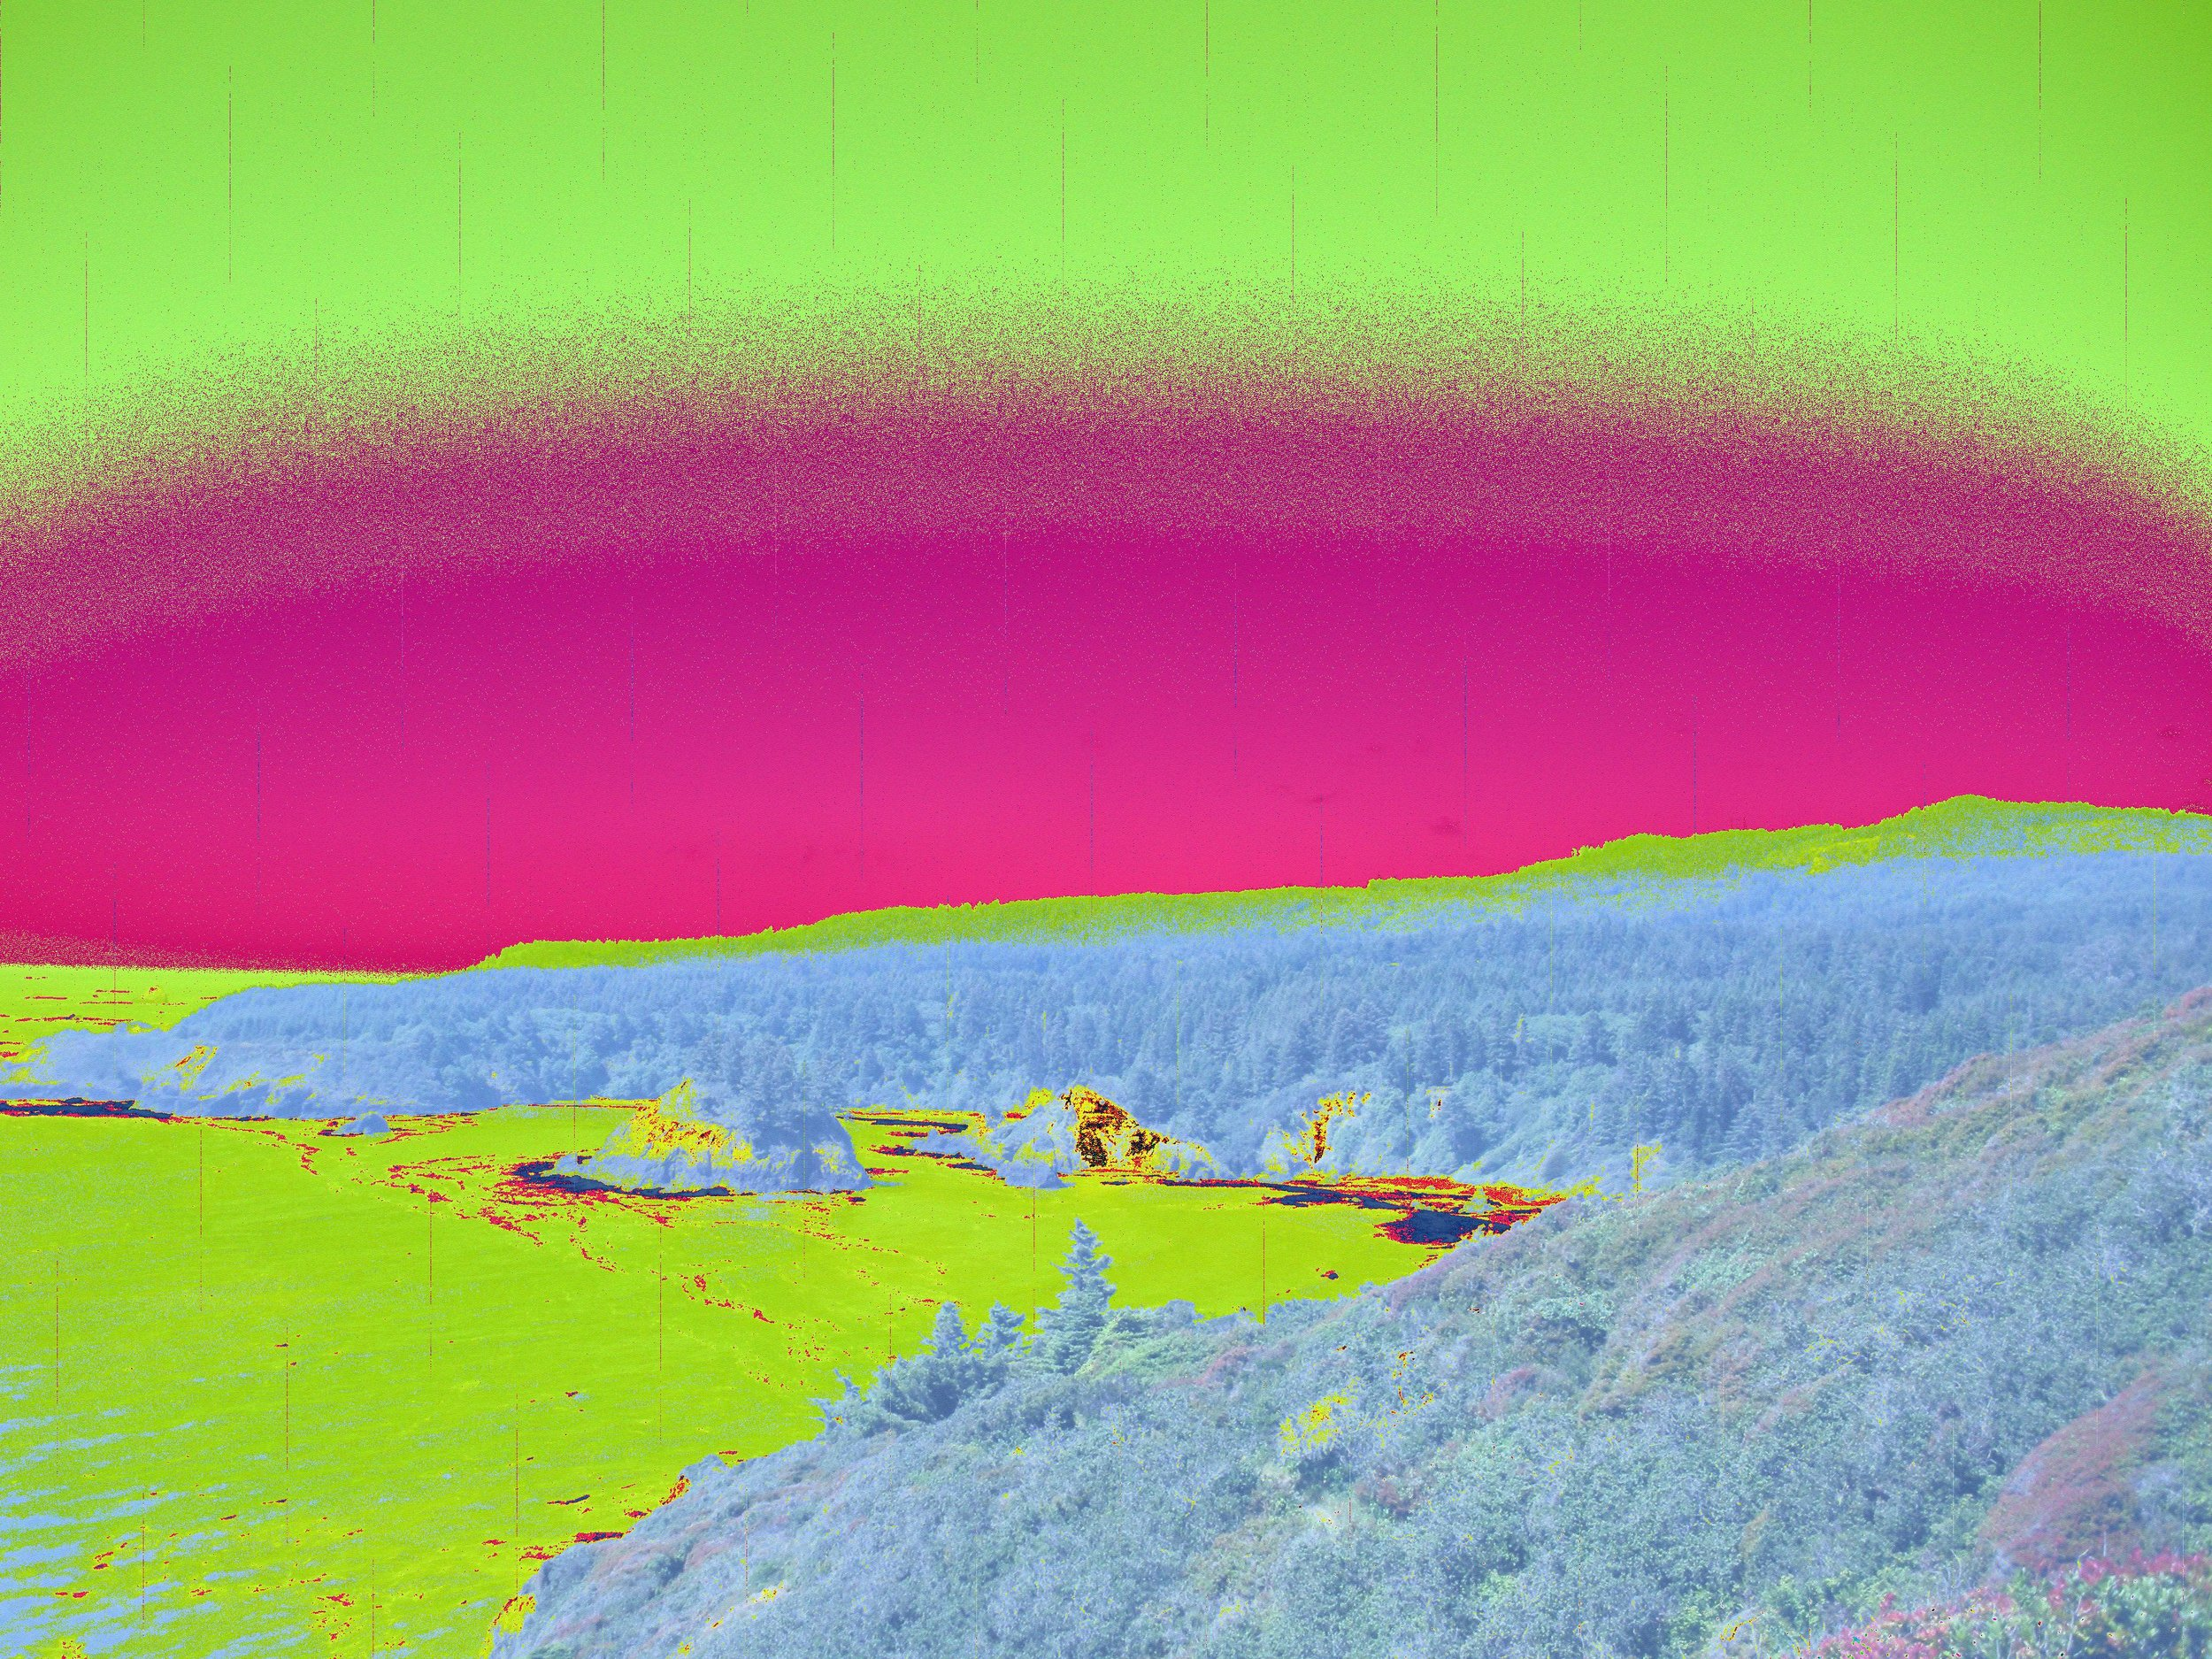 The images in this feature were created by the author using a steganographic algorithm. Trinidad Head, California, 2016.